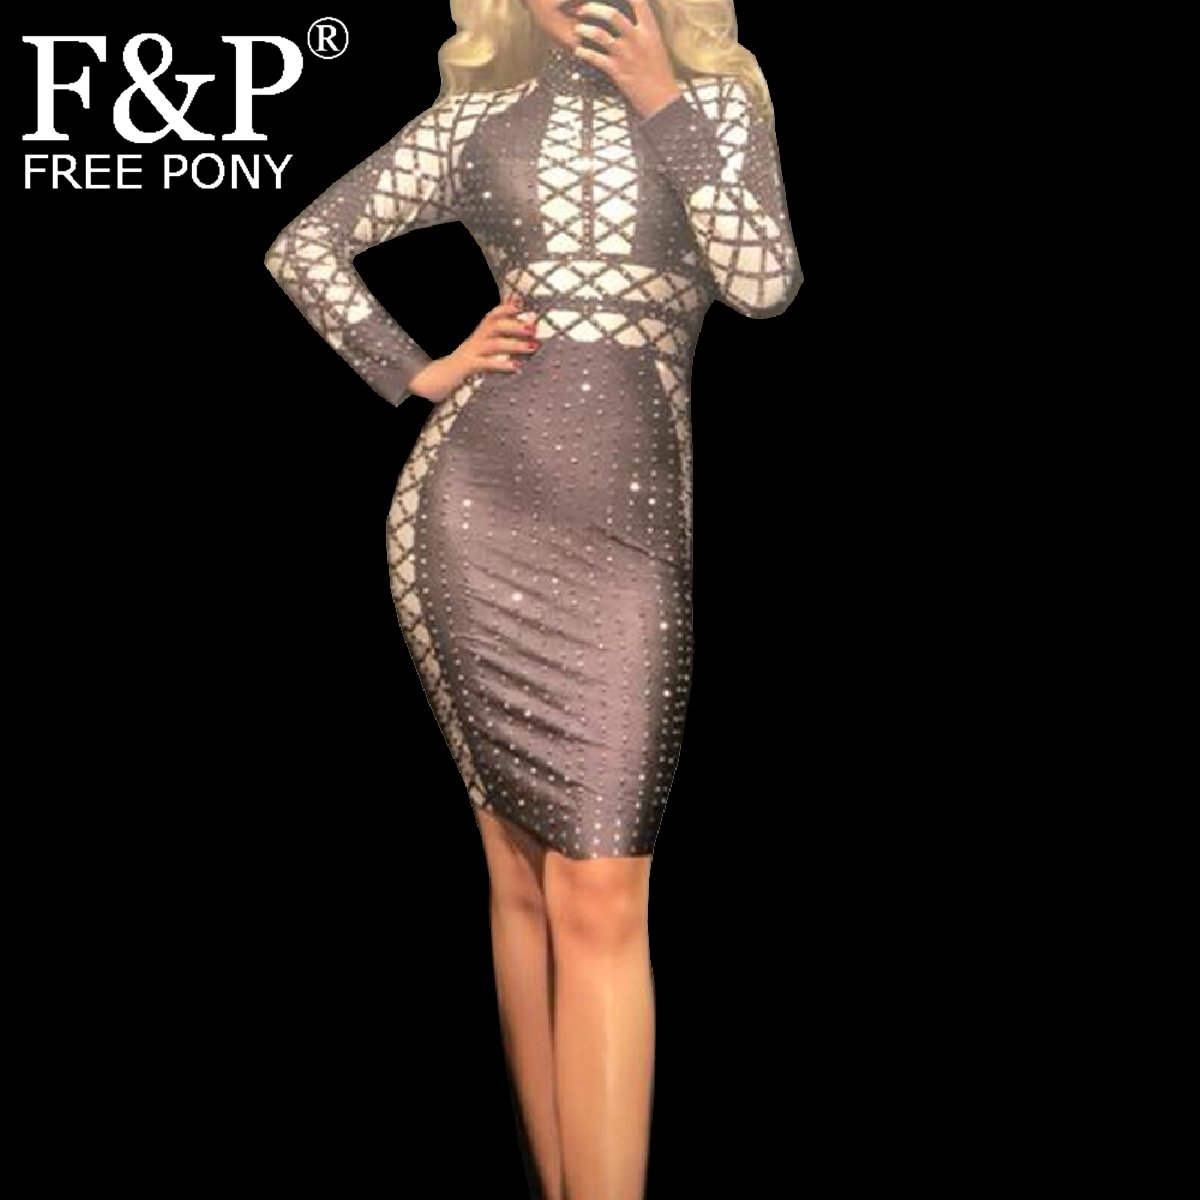 Здесь продается  Sexy Drag Queen Costumes Rhinestone Bodycon Dress Celebrity Runway Outfit Stage Dance Wear Costumes For Singers Fashion Show  Одежда и аксессуары